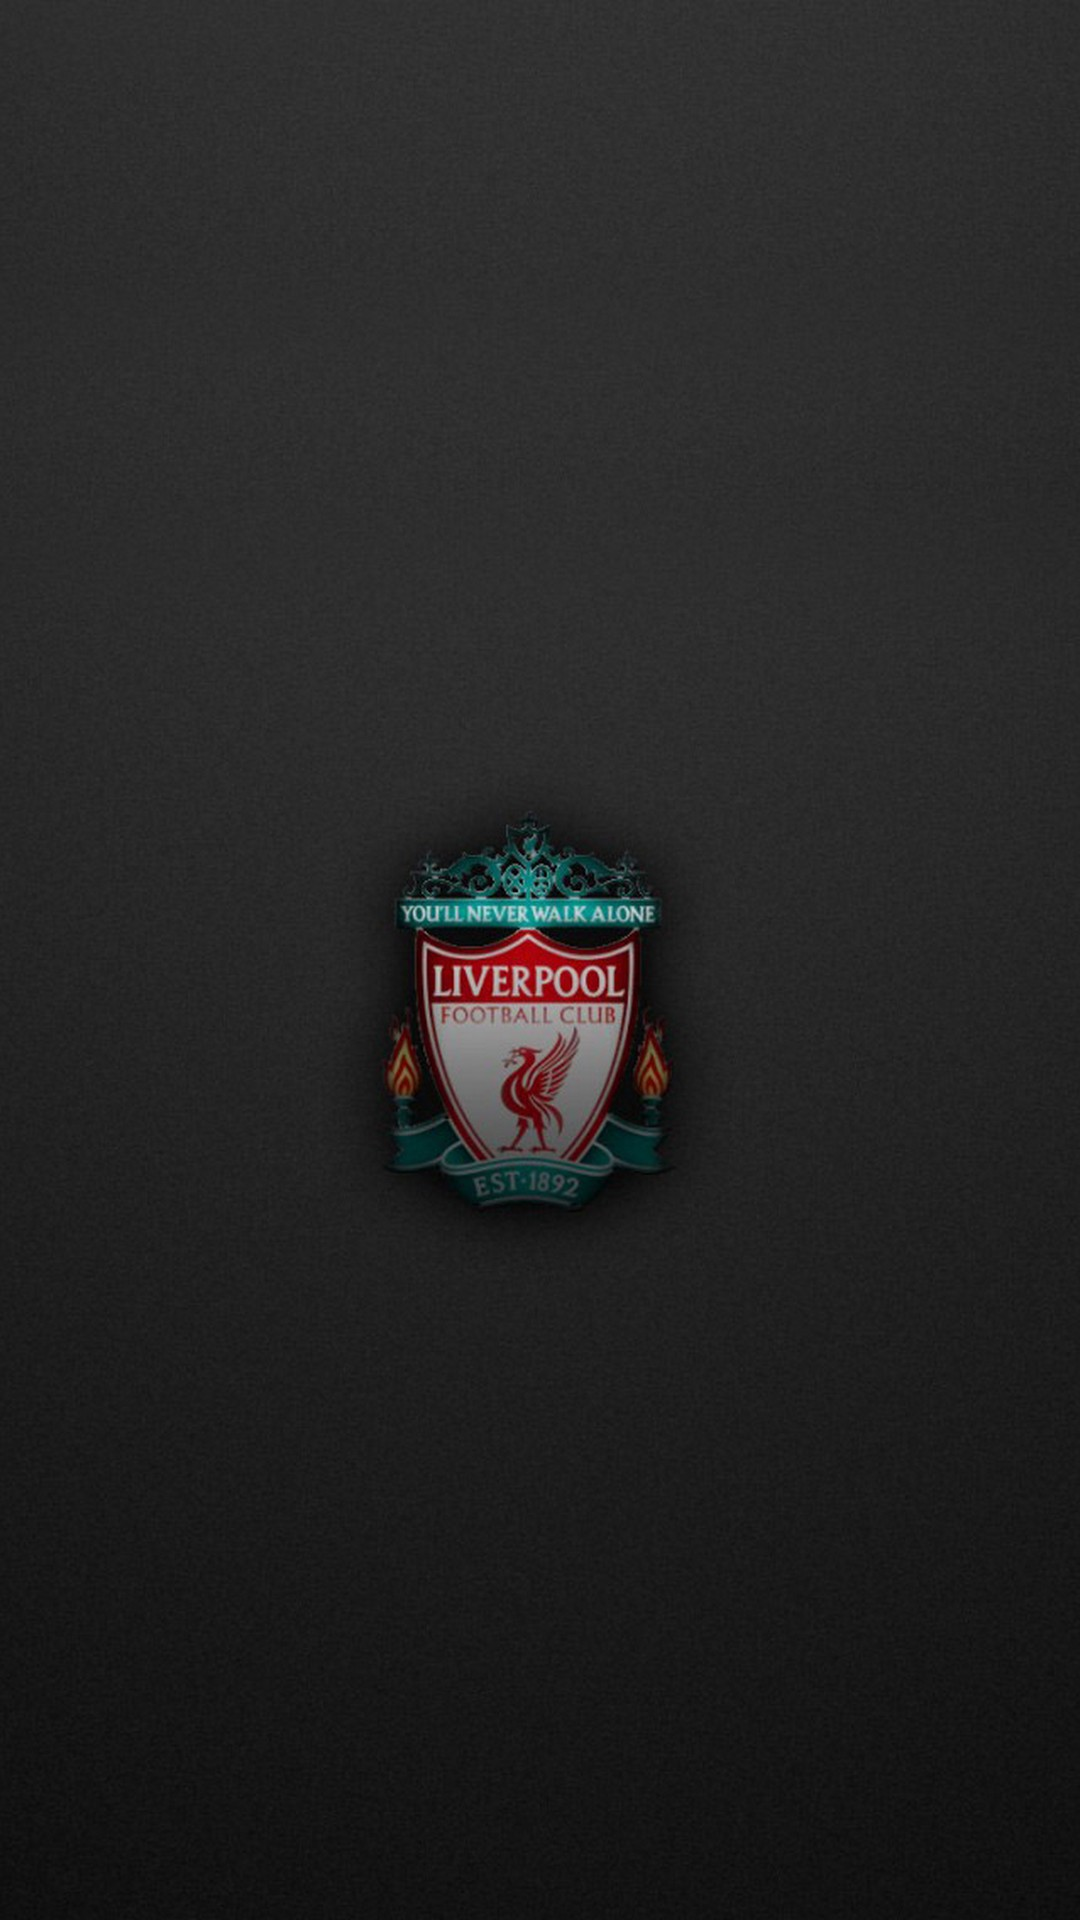 Liverpool Wallpaper Android With High-resolution Pixel - Liverpool Wallpaper Hd For Phone - HD Wallpaper